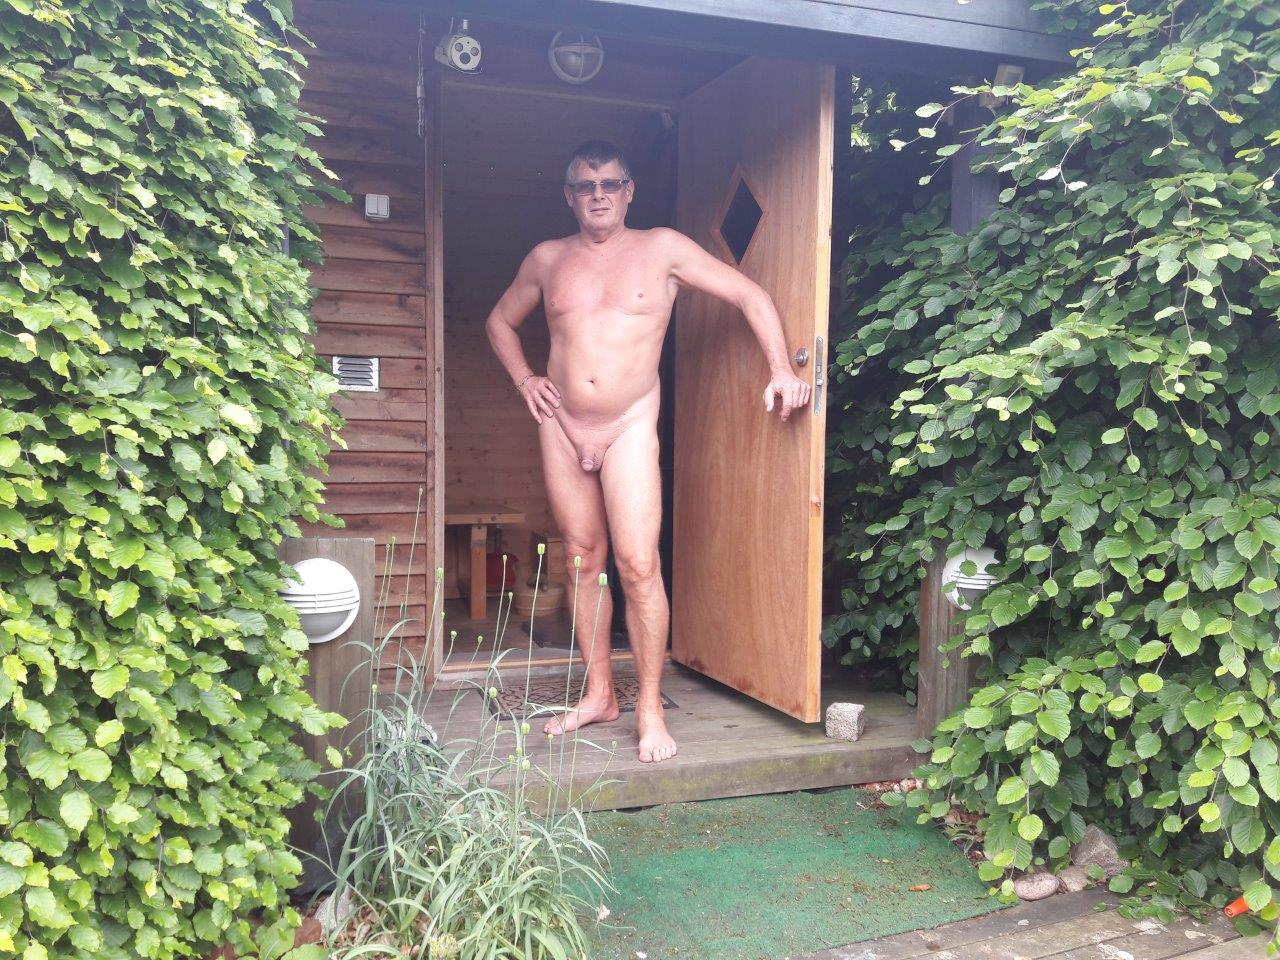 Olaf la Cour, in front of the sauna